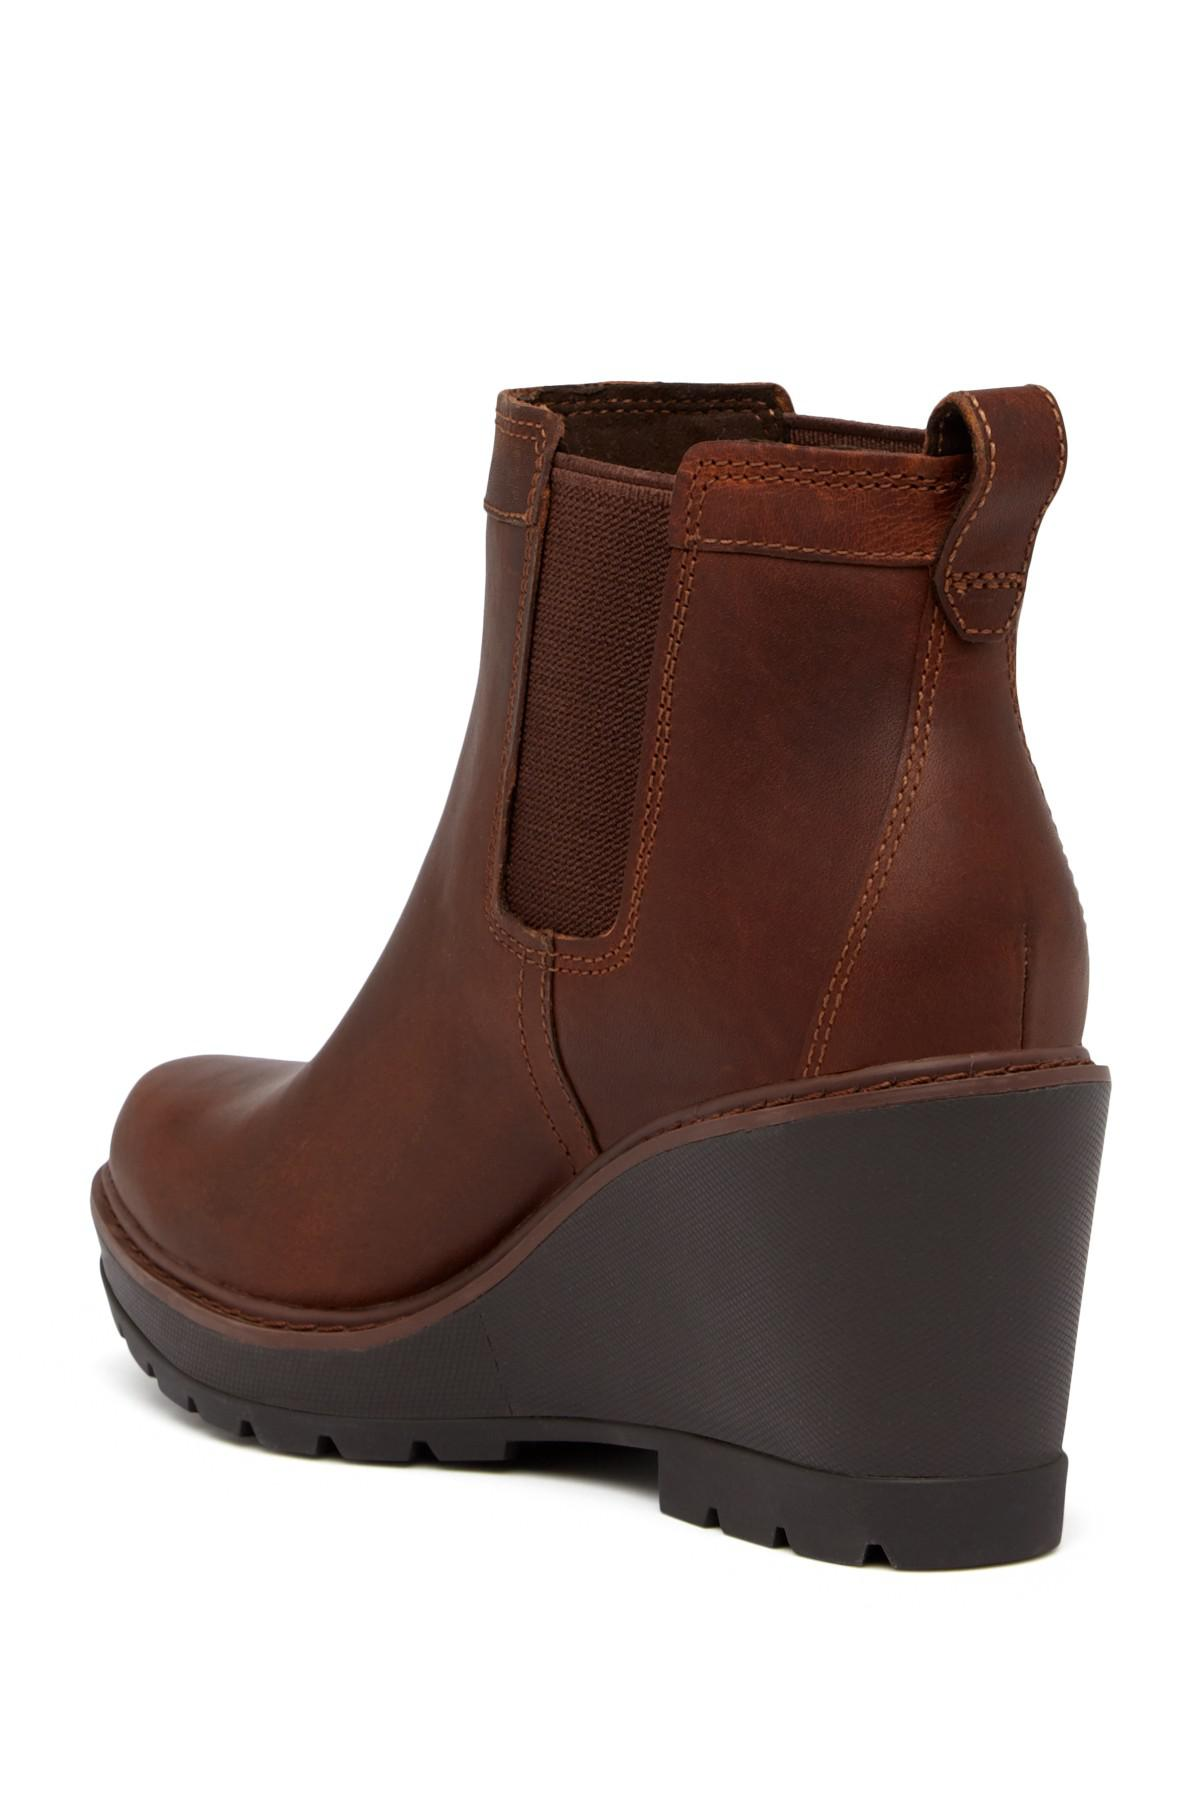 7f5a8a101 Timberland - Brown Kellis Double Gore Chelsea Leather Wedge Boot - Lyst.  View fullscreen